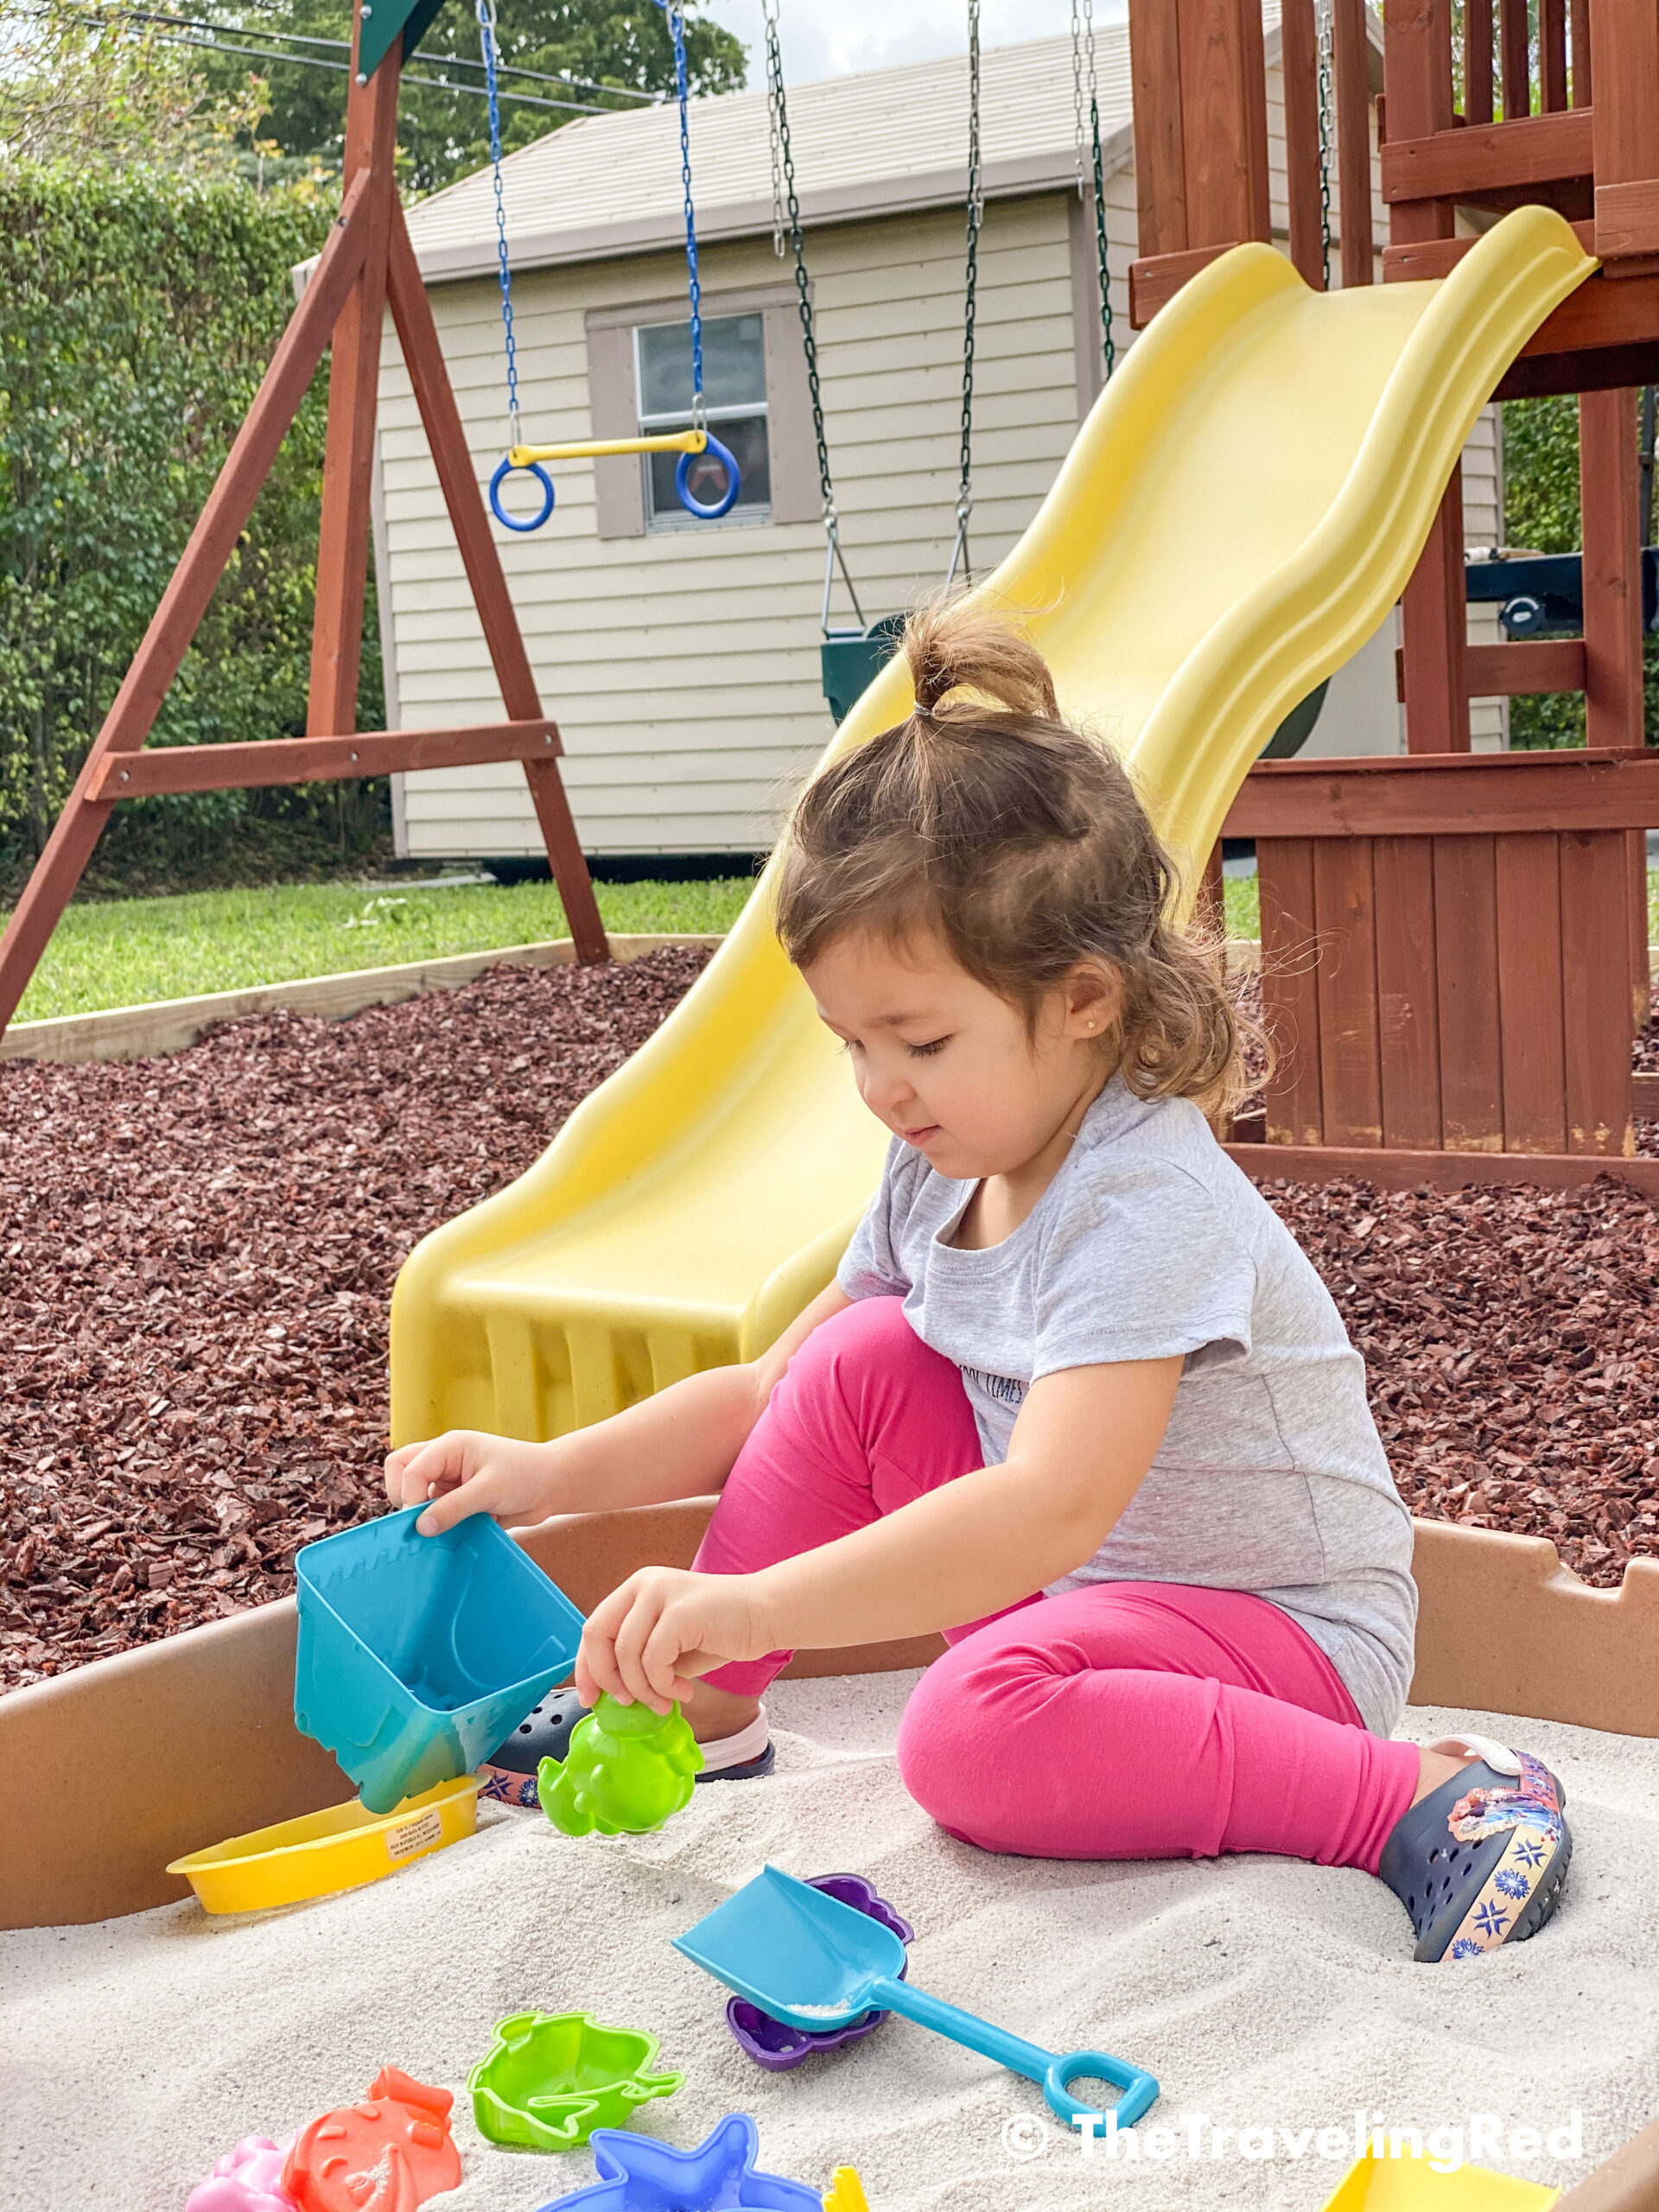 How we built a custom backyard playground with rubber mulch for our swingset, playhouse and sand box. Our sandbox is filled with beach toys and she loves playing in it. This outdoor playground is perfect little outdoor play space for your kids and it's soft on the feet.